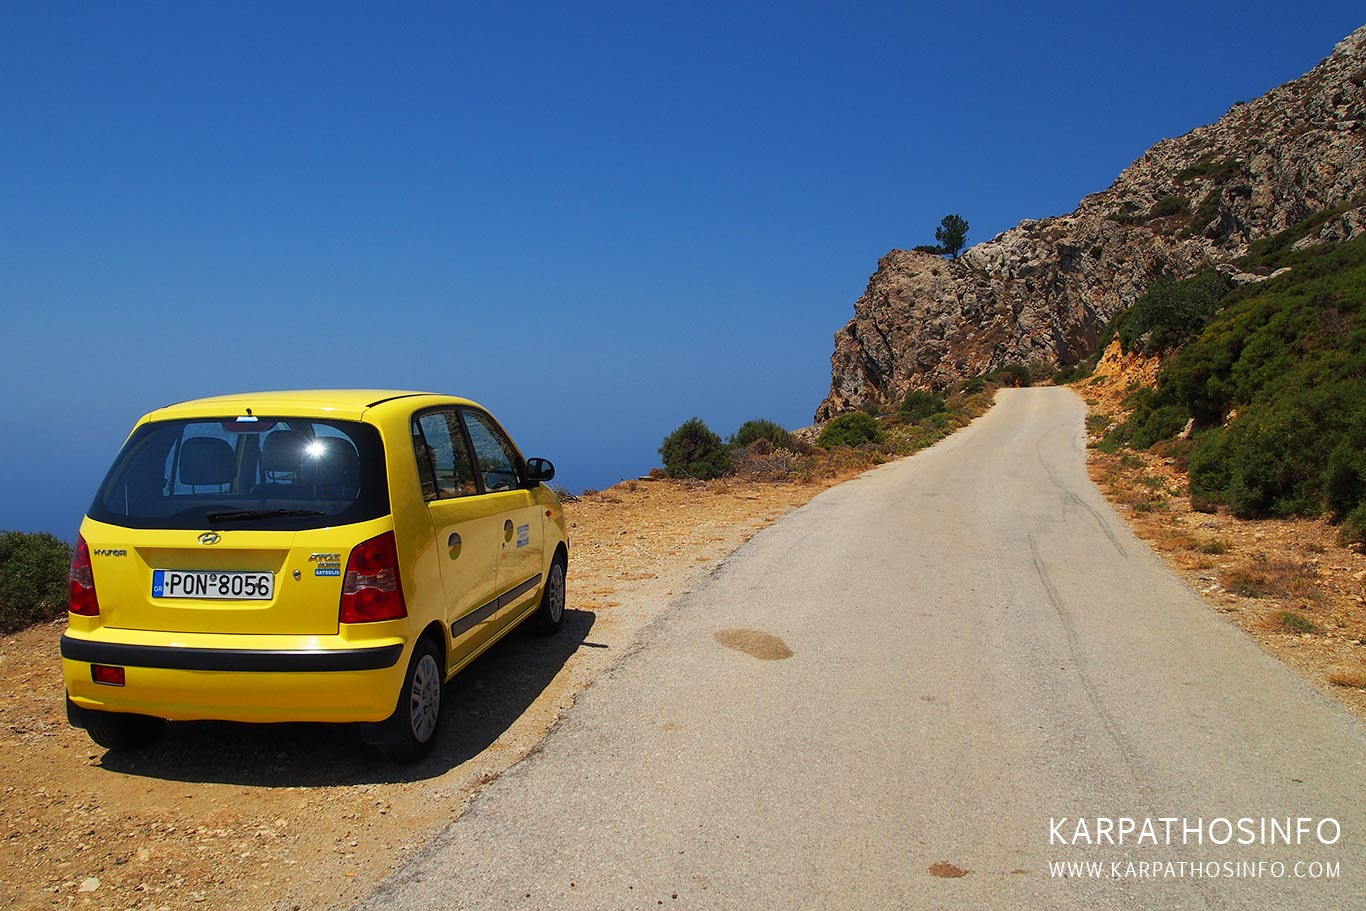 Rent A Car in Karpathos